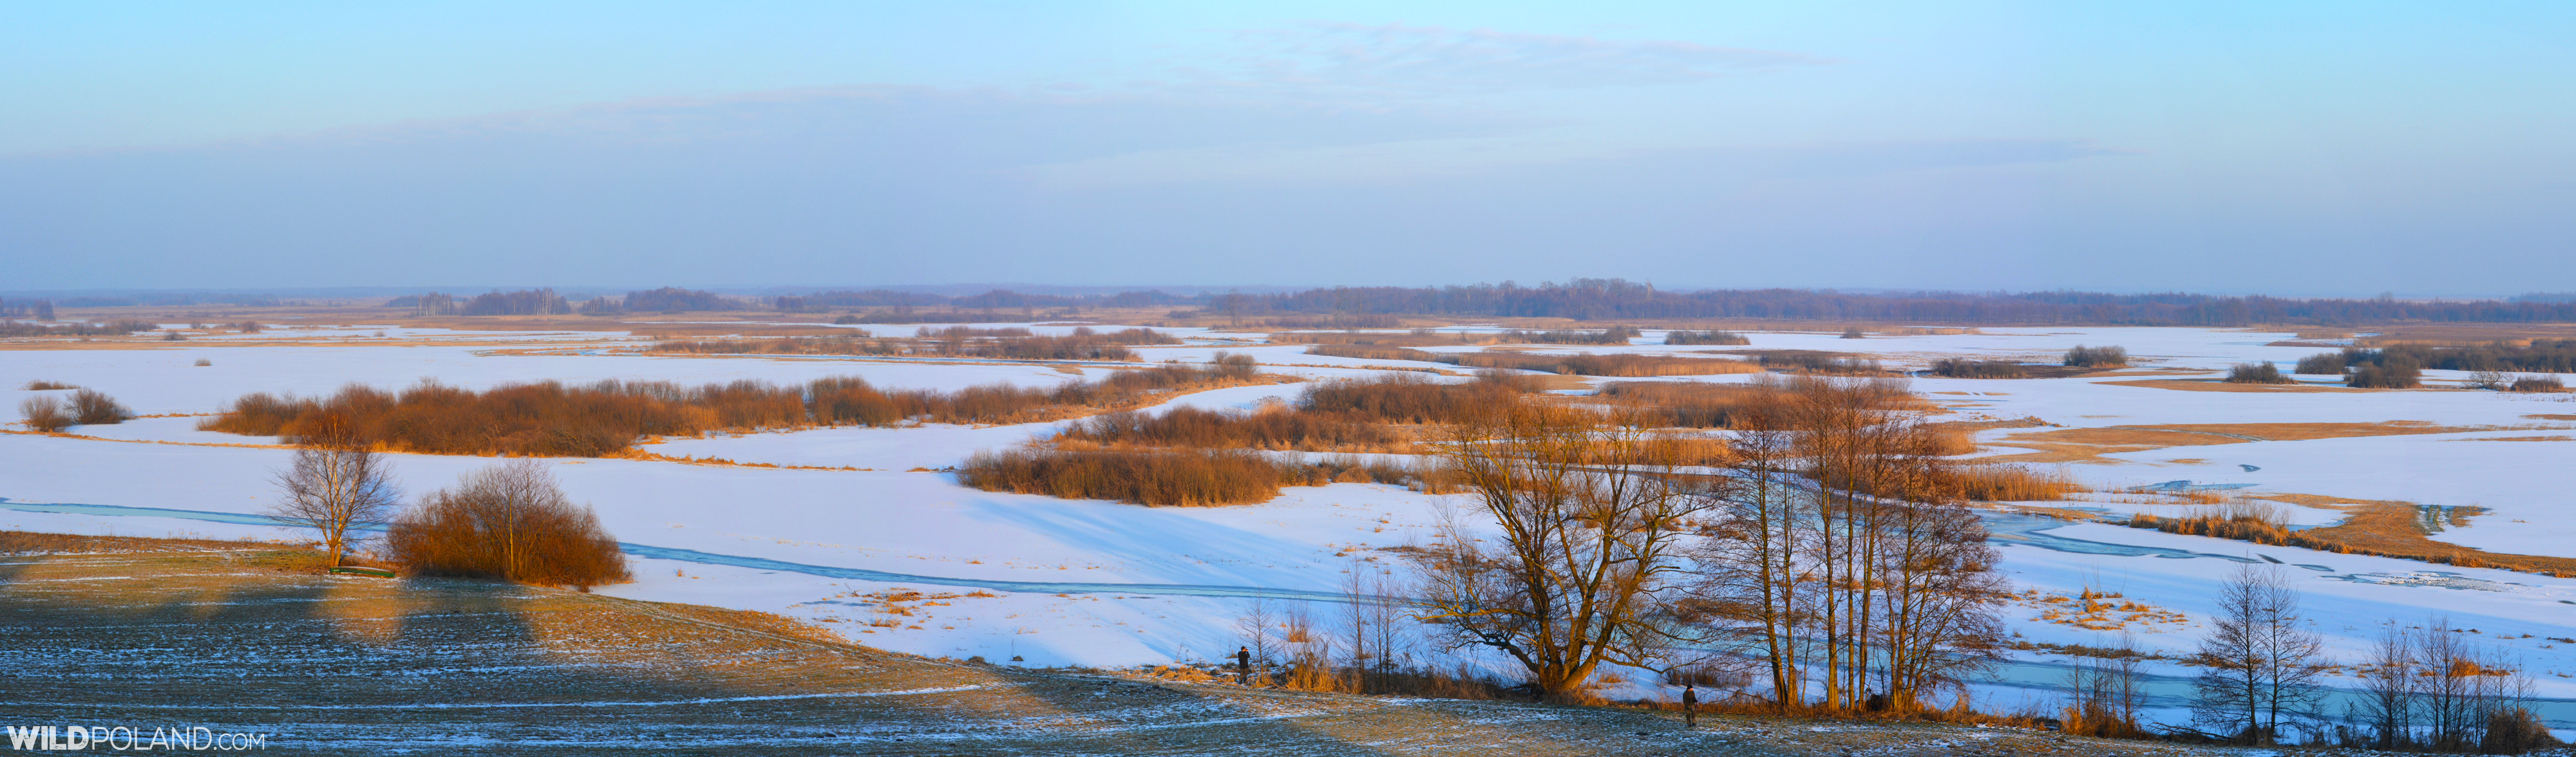 The view of the Biebrza Marshes at wintertime